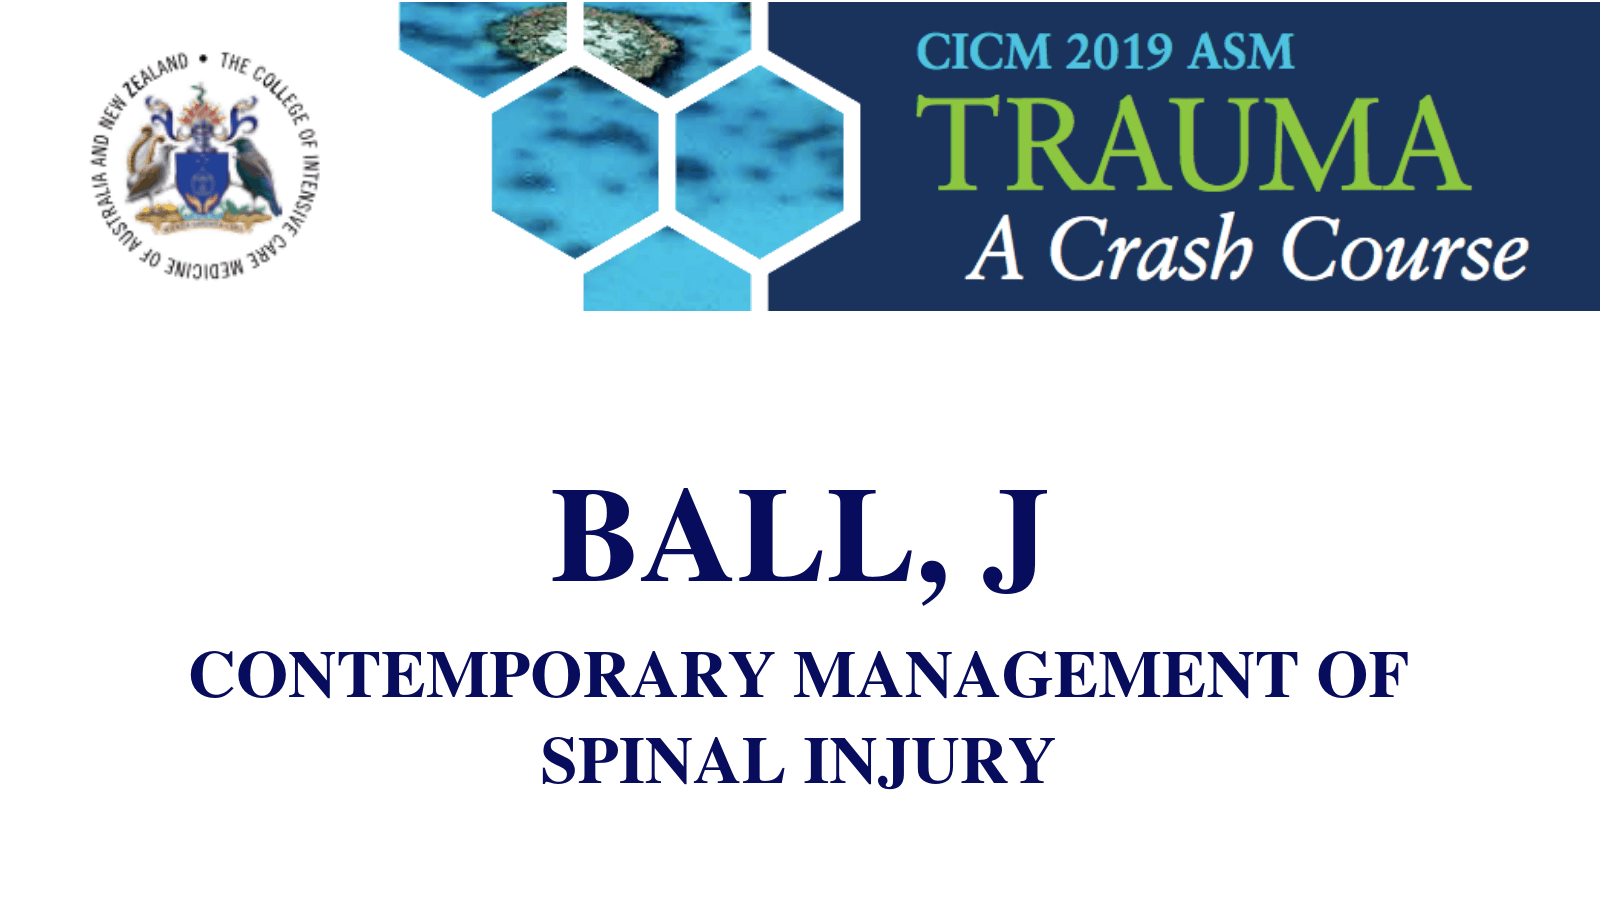 Contemporary management of spinal injury